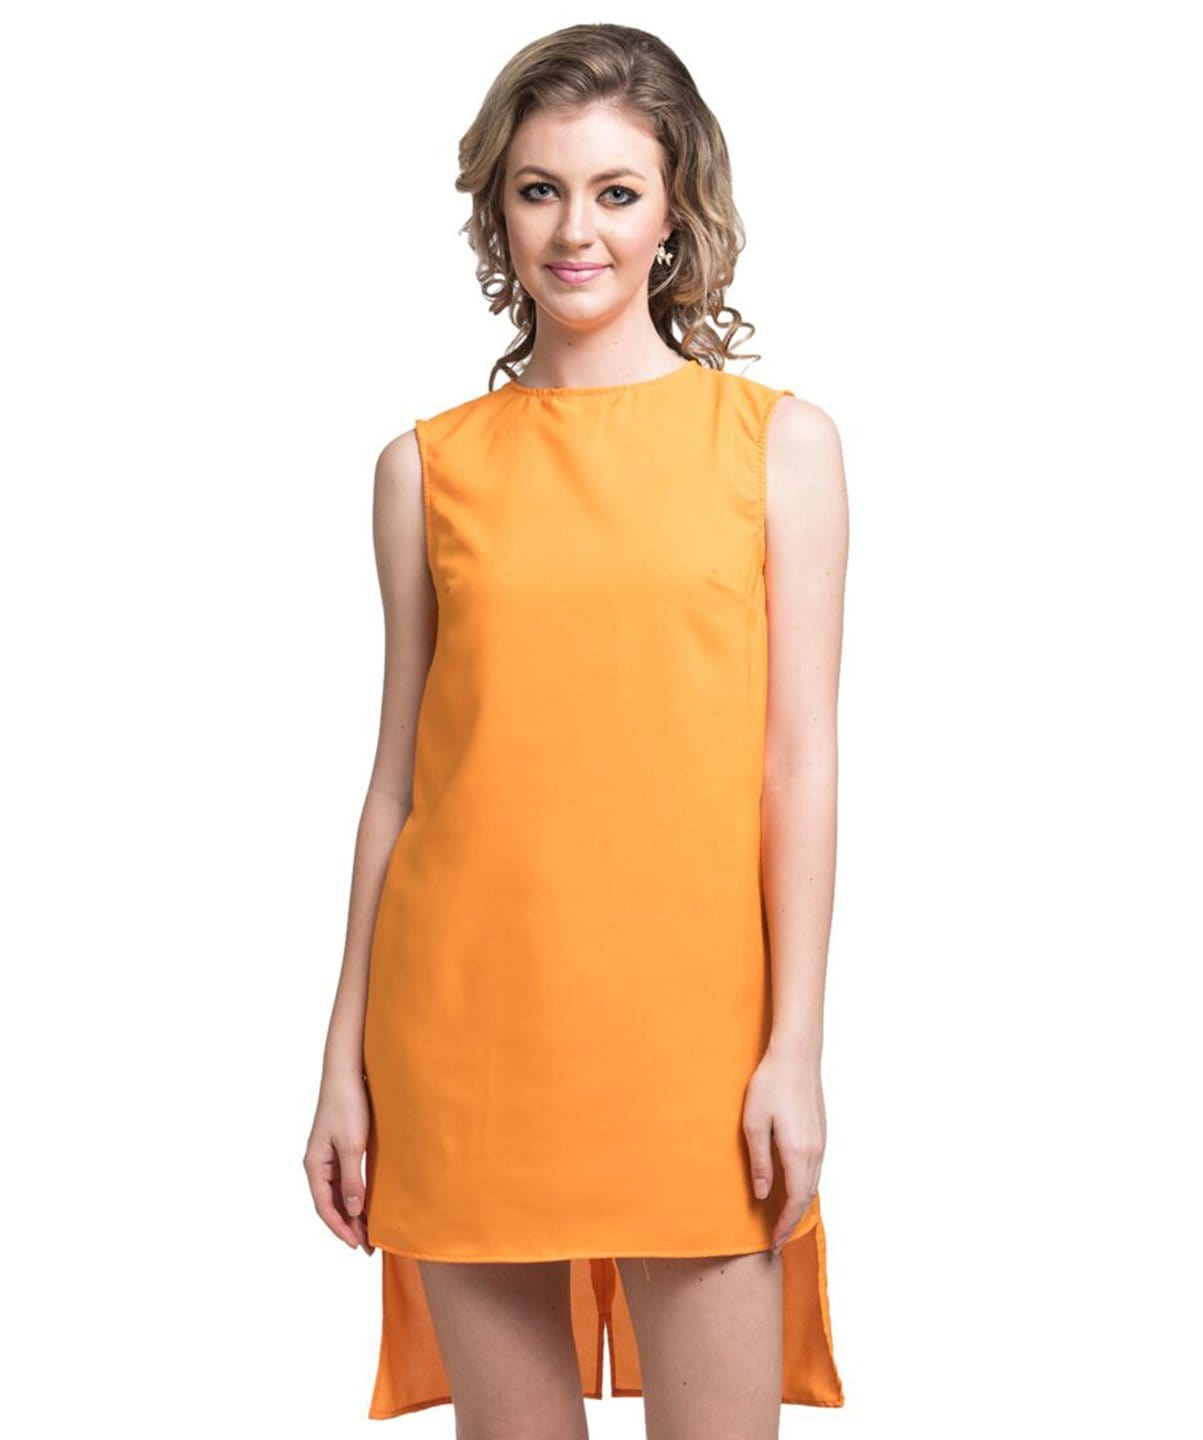 Solid Yellow Hi-low Crepe Dress - Uptownie